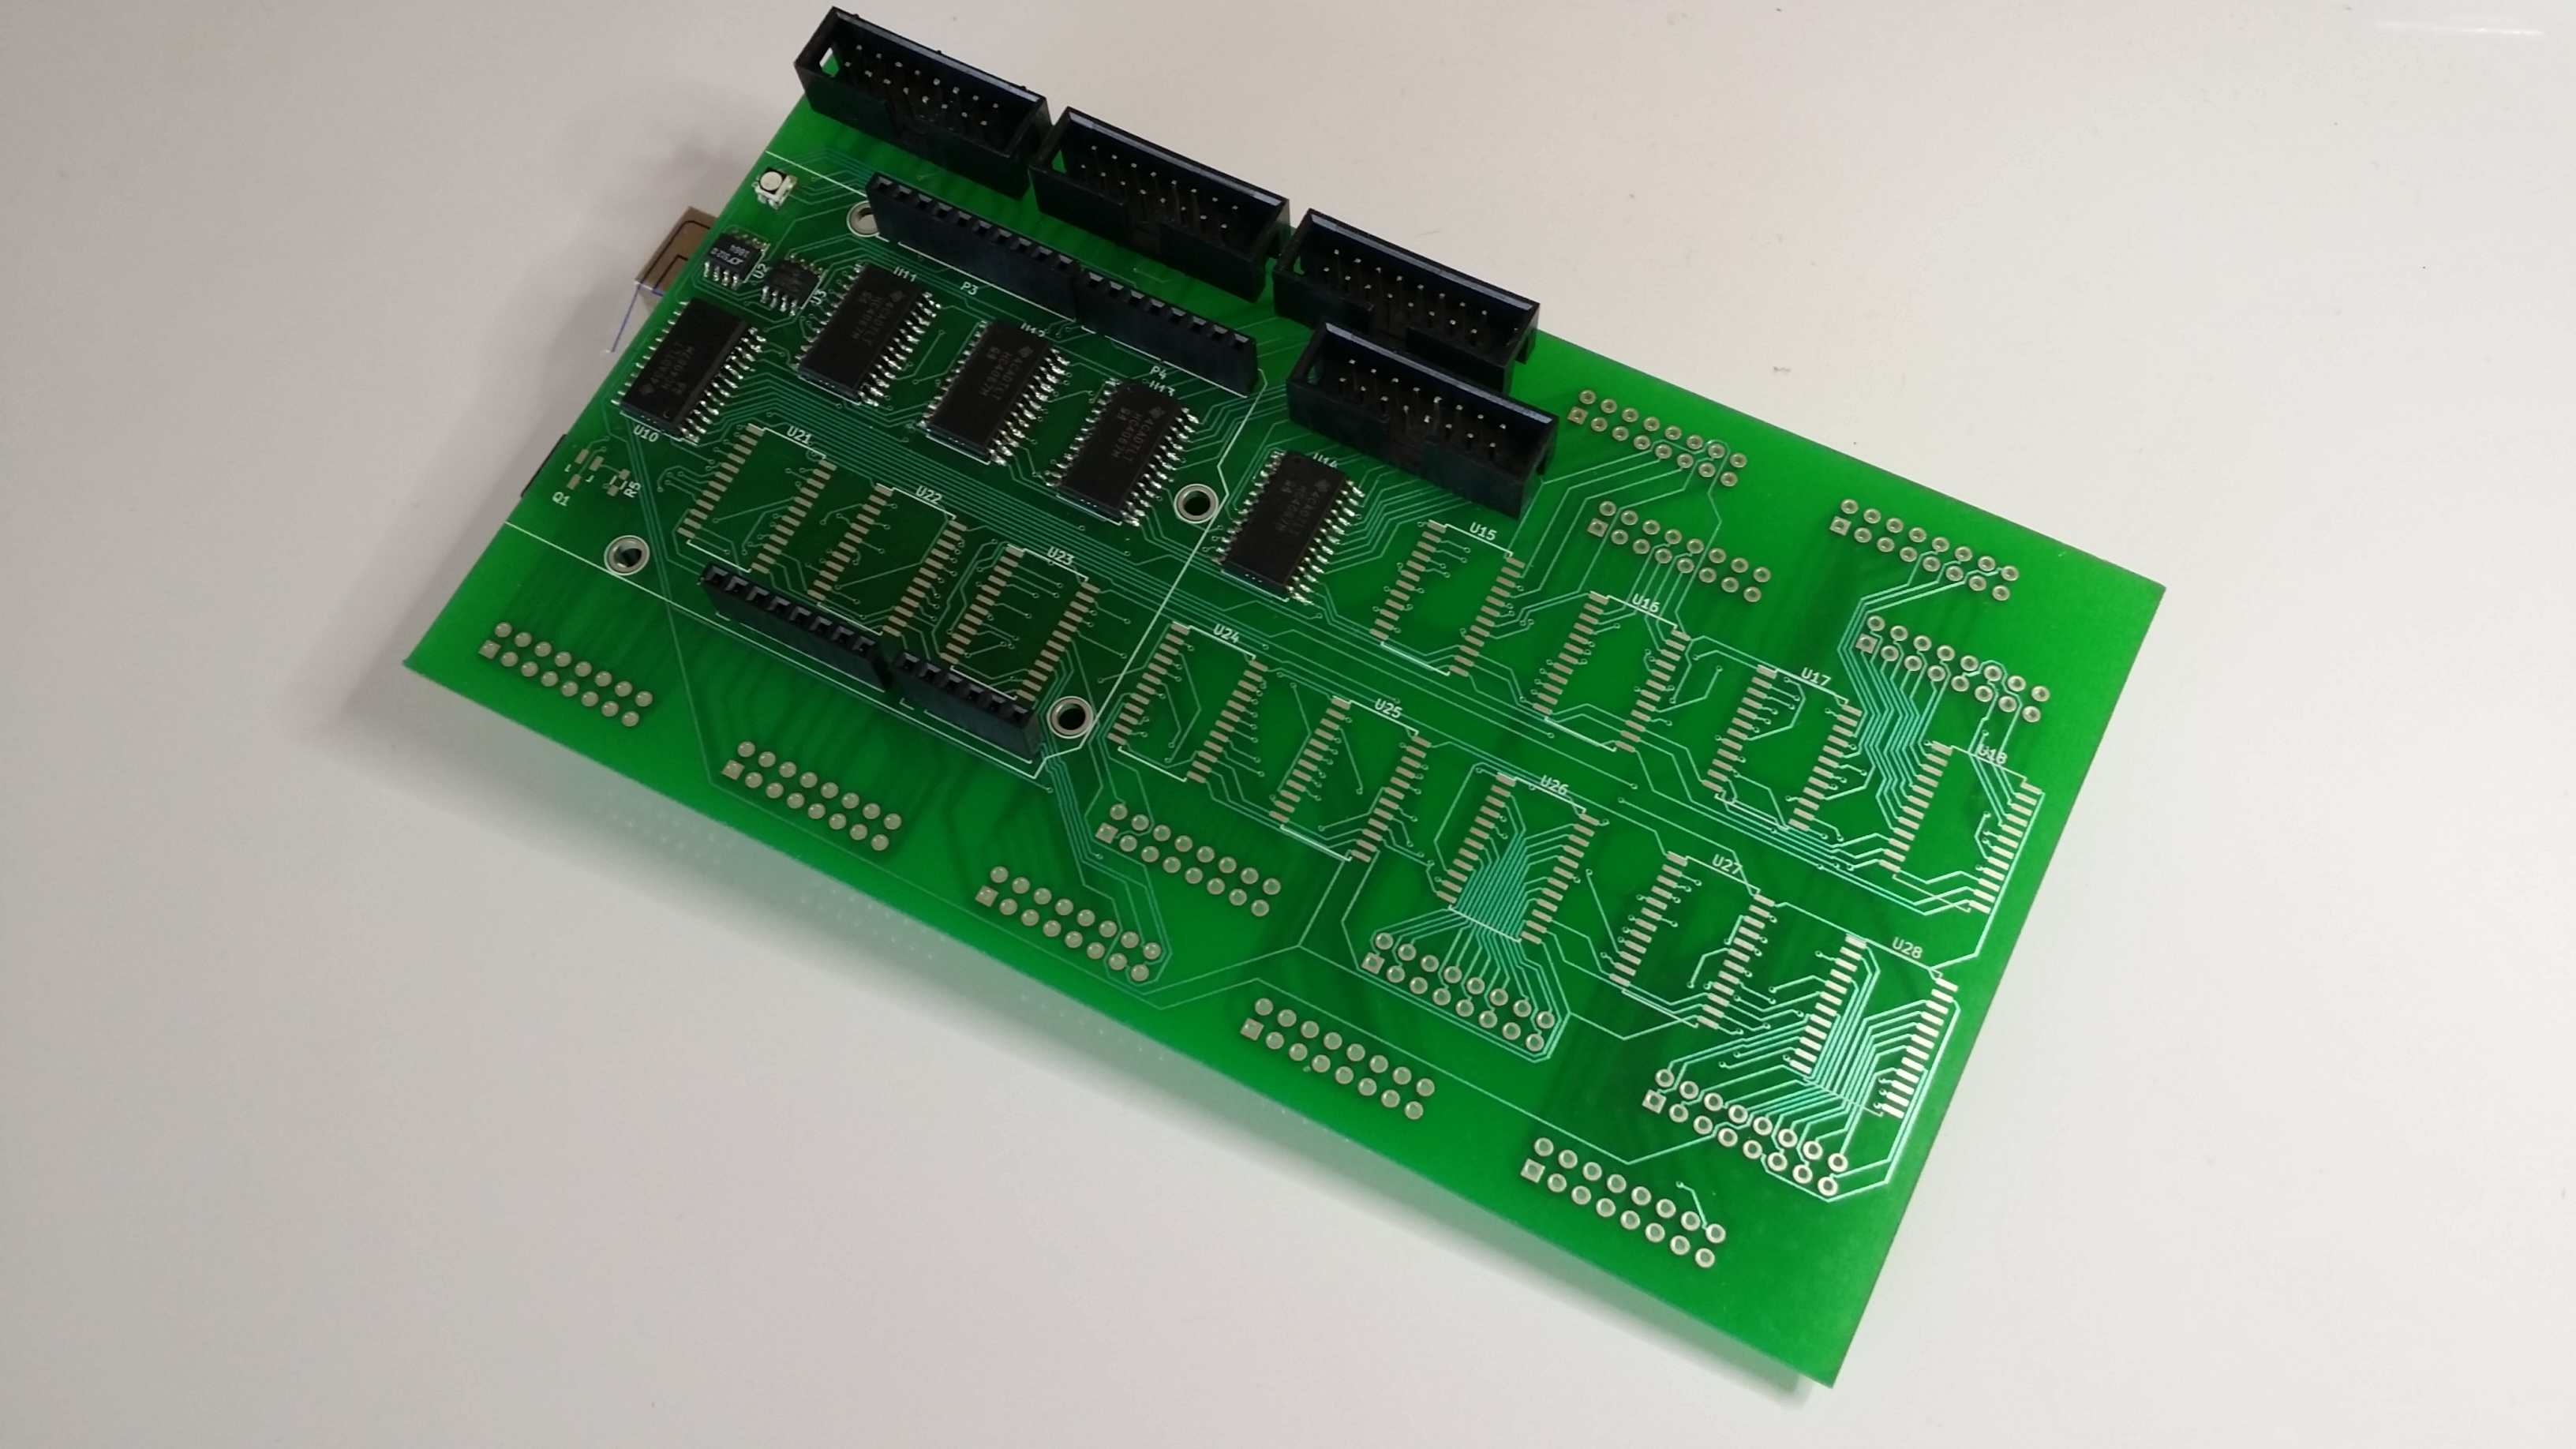 The Arduino Uno and its shield #1